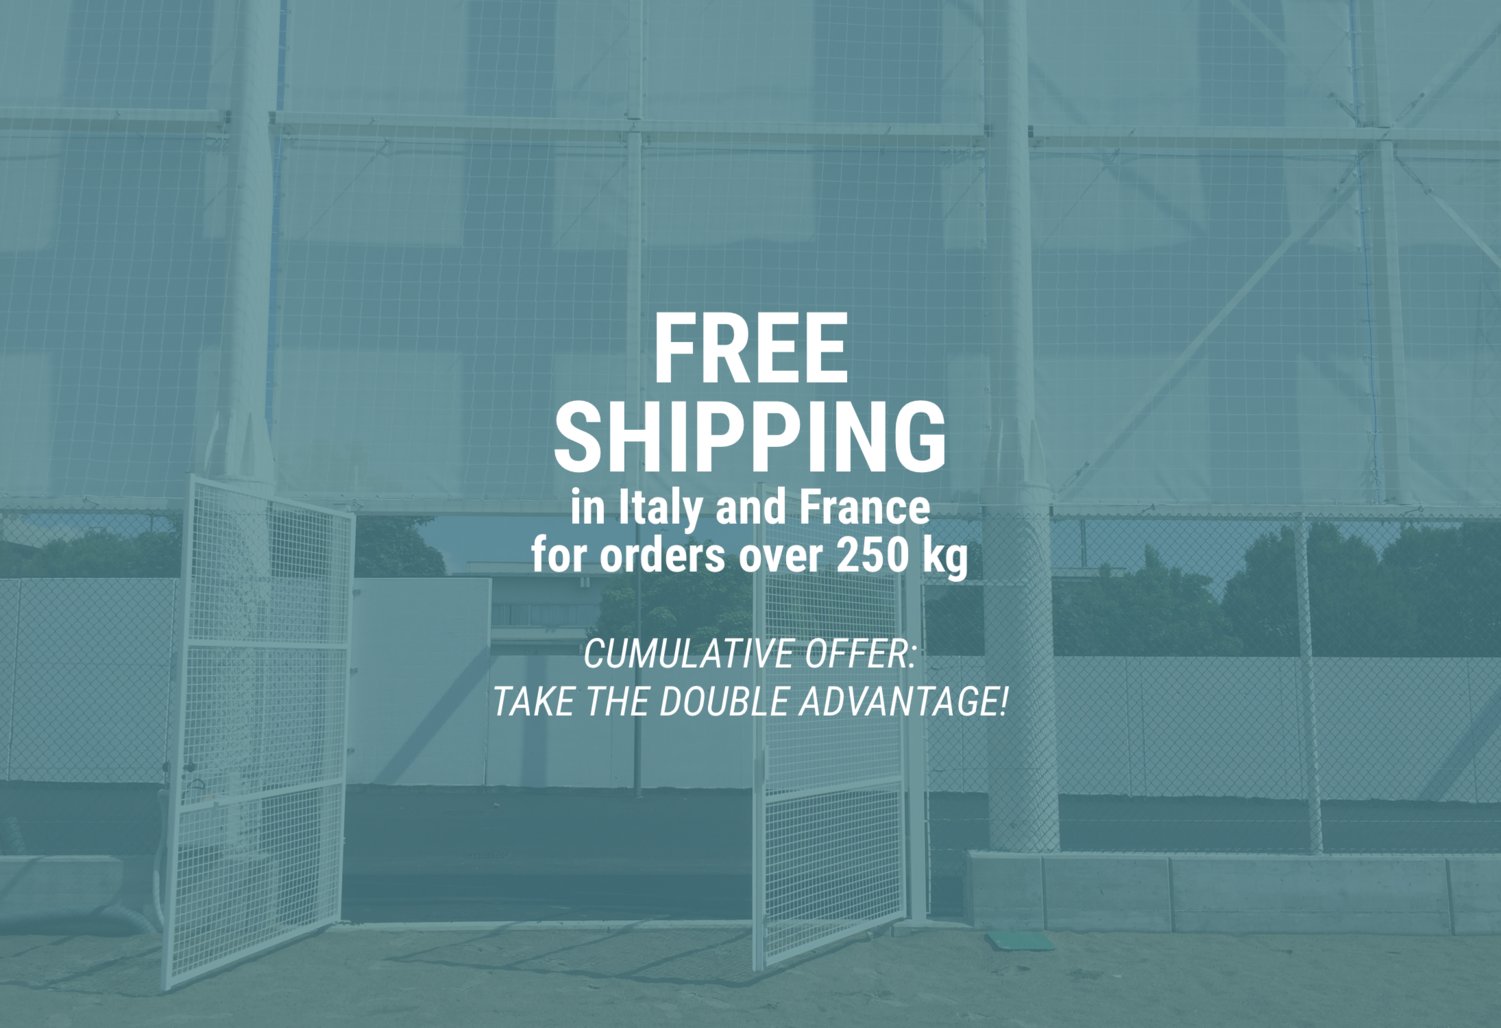 Free shipping for orders over 250 kg